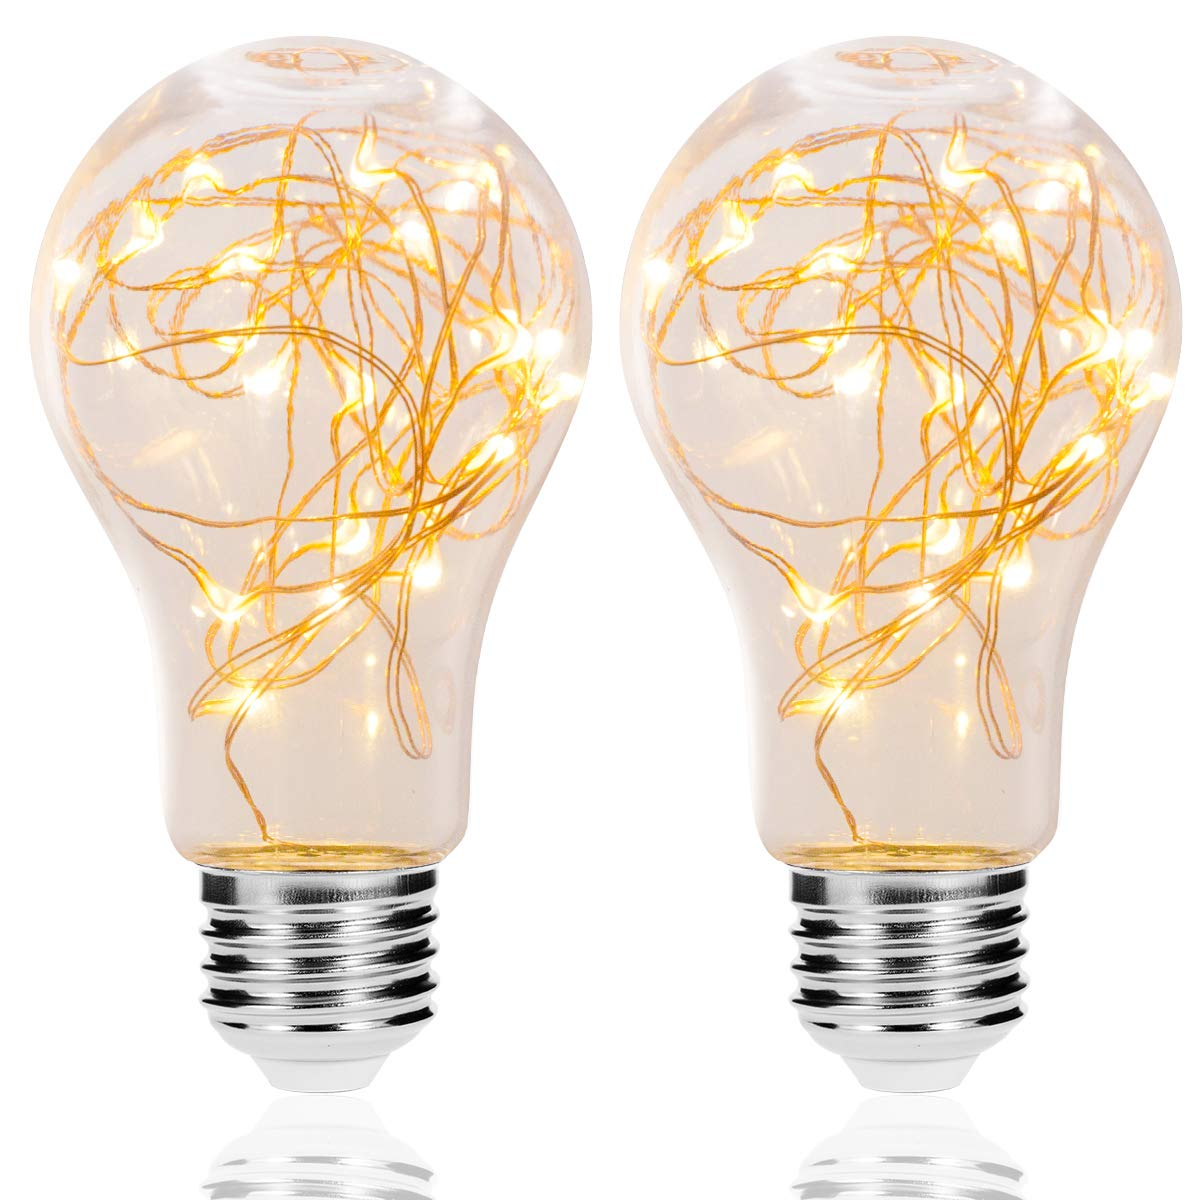 Ge Stained Glass Light Bulb Indoor 25 W A19 Med Base 4-1//4 In Multicolored Carded G.E Lighting